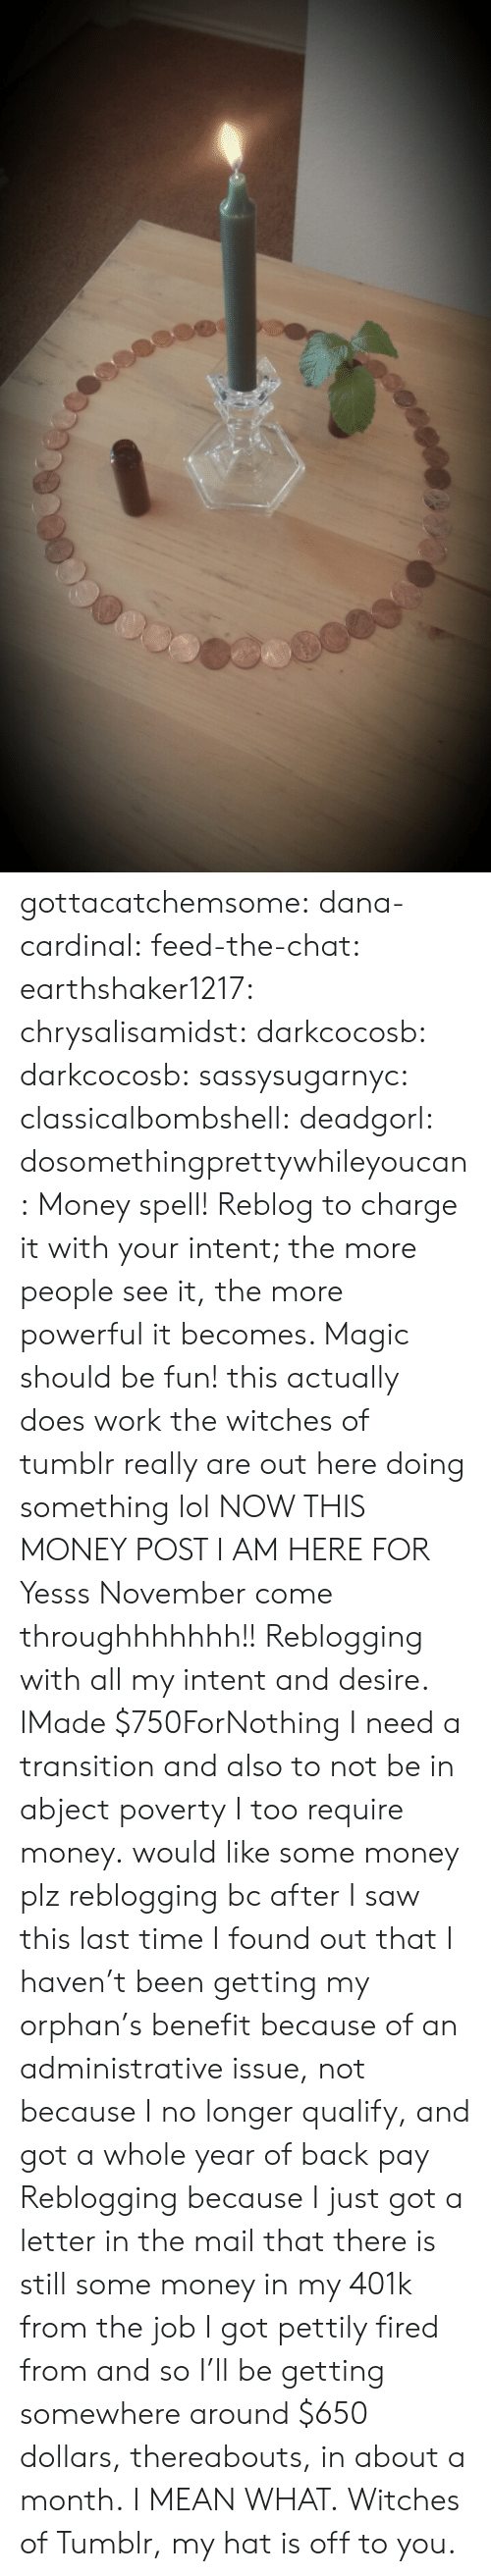 benefit: gottacatchemsome: dana-cardinal:  feed-the-chat:  earthshaker1217:  chrysalisamidst:  darkcocosb:  darkcocosb:  sassysugarnyc:  classicalbombshell:  deadgorl:  dosomethingprettywhileyoucan:  Money spell! Reblog to charge it with your intent; the more people see it, the more powerful it becomes. Magic should be fun!  this actually does work the witches of tumblr really are out here doing something lol  NOW THIS MONEY POST I AM HERE FOR  Yesss November come throughhhhhhh!!  Reblogging with all my intent and desire.  IMade $750ForNothing  I need a transition and also to not be in abject poverty  I too require money.  would like some money plz  reblogging bc after I saw this last time I found out that I haven't been getting my orphan's benefit because of an administrative issue, not because I no longer qualify, and got a whole year of back pay  Reblogging because I just got a letter in the mail that there is still some money in my 401k from the job I got pettily fired from and so I'll be getting somewhere around $650 dollars, thereabouts, in about a month. I MEAN WHAT. Witches of Tumblr, my hat is off to you.